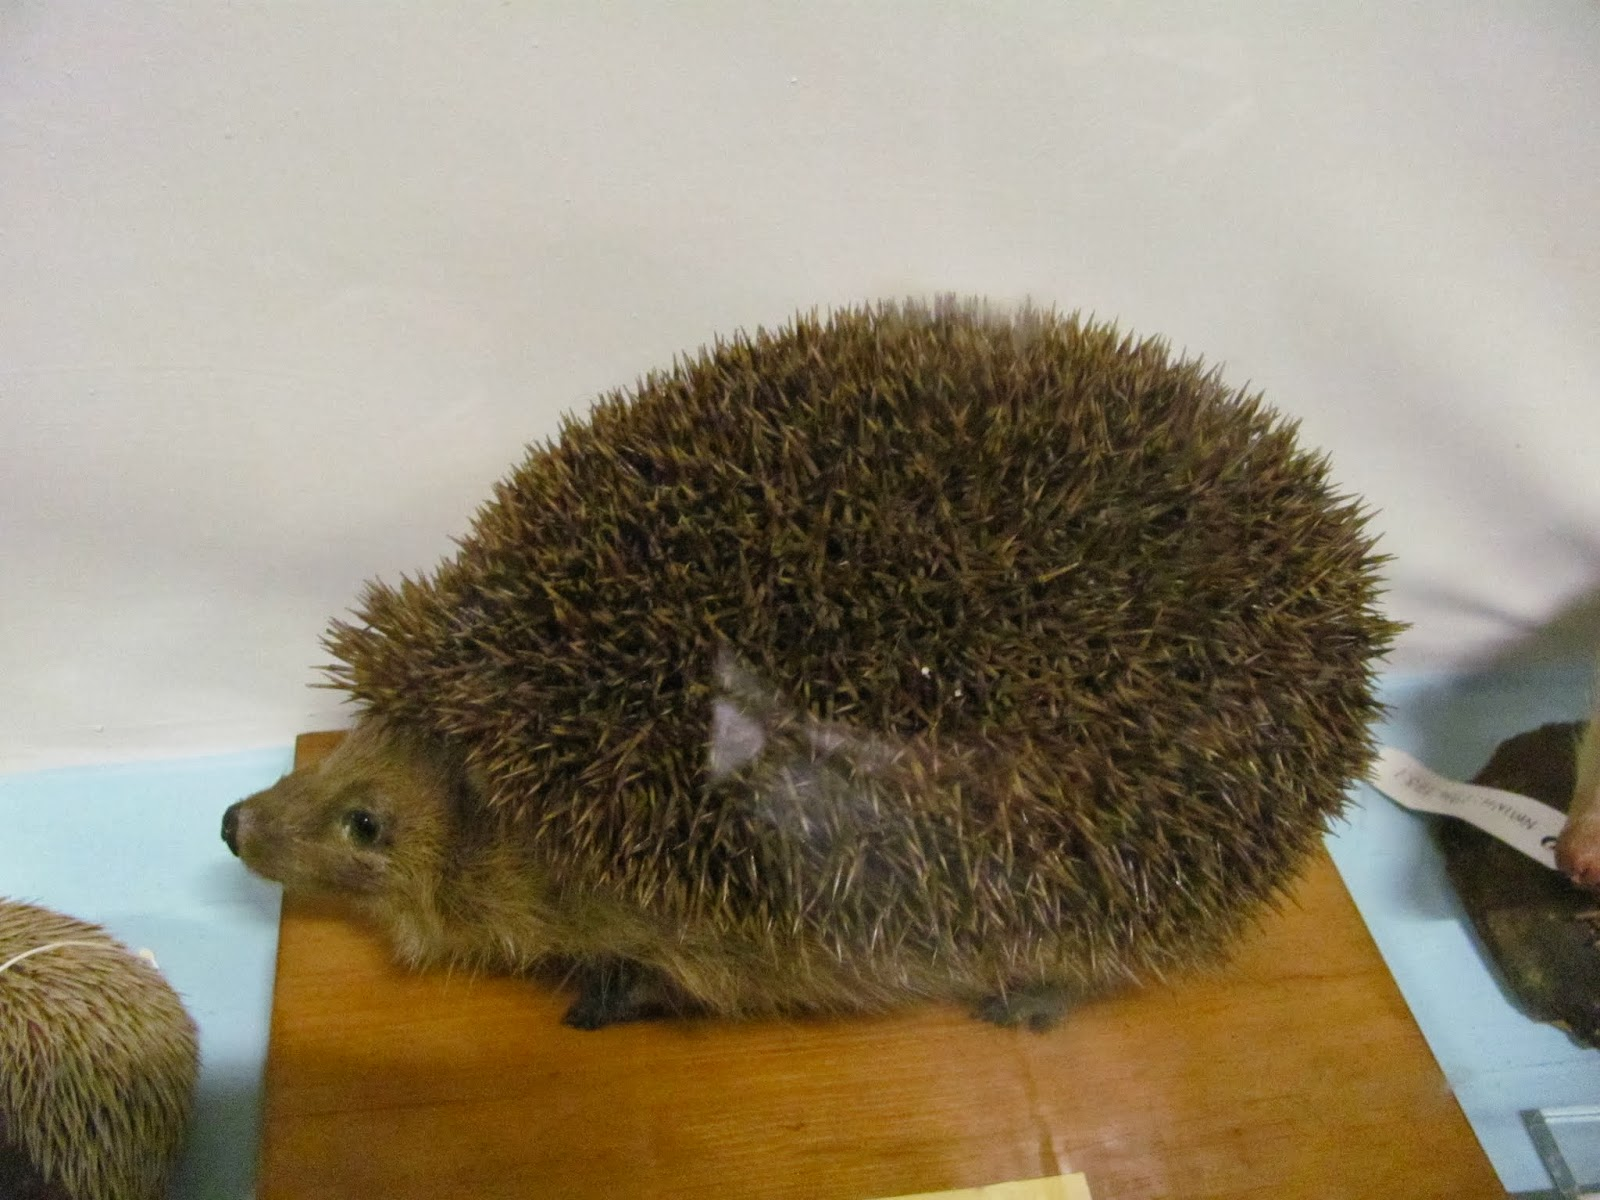 A stuffed hedgehog at the Natural History Museum Dublin, Ireland